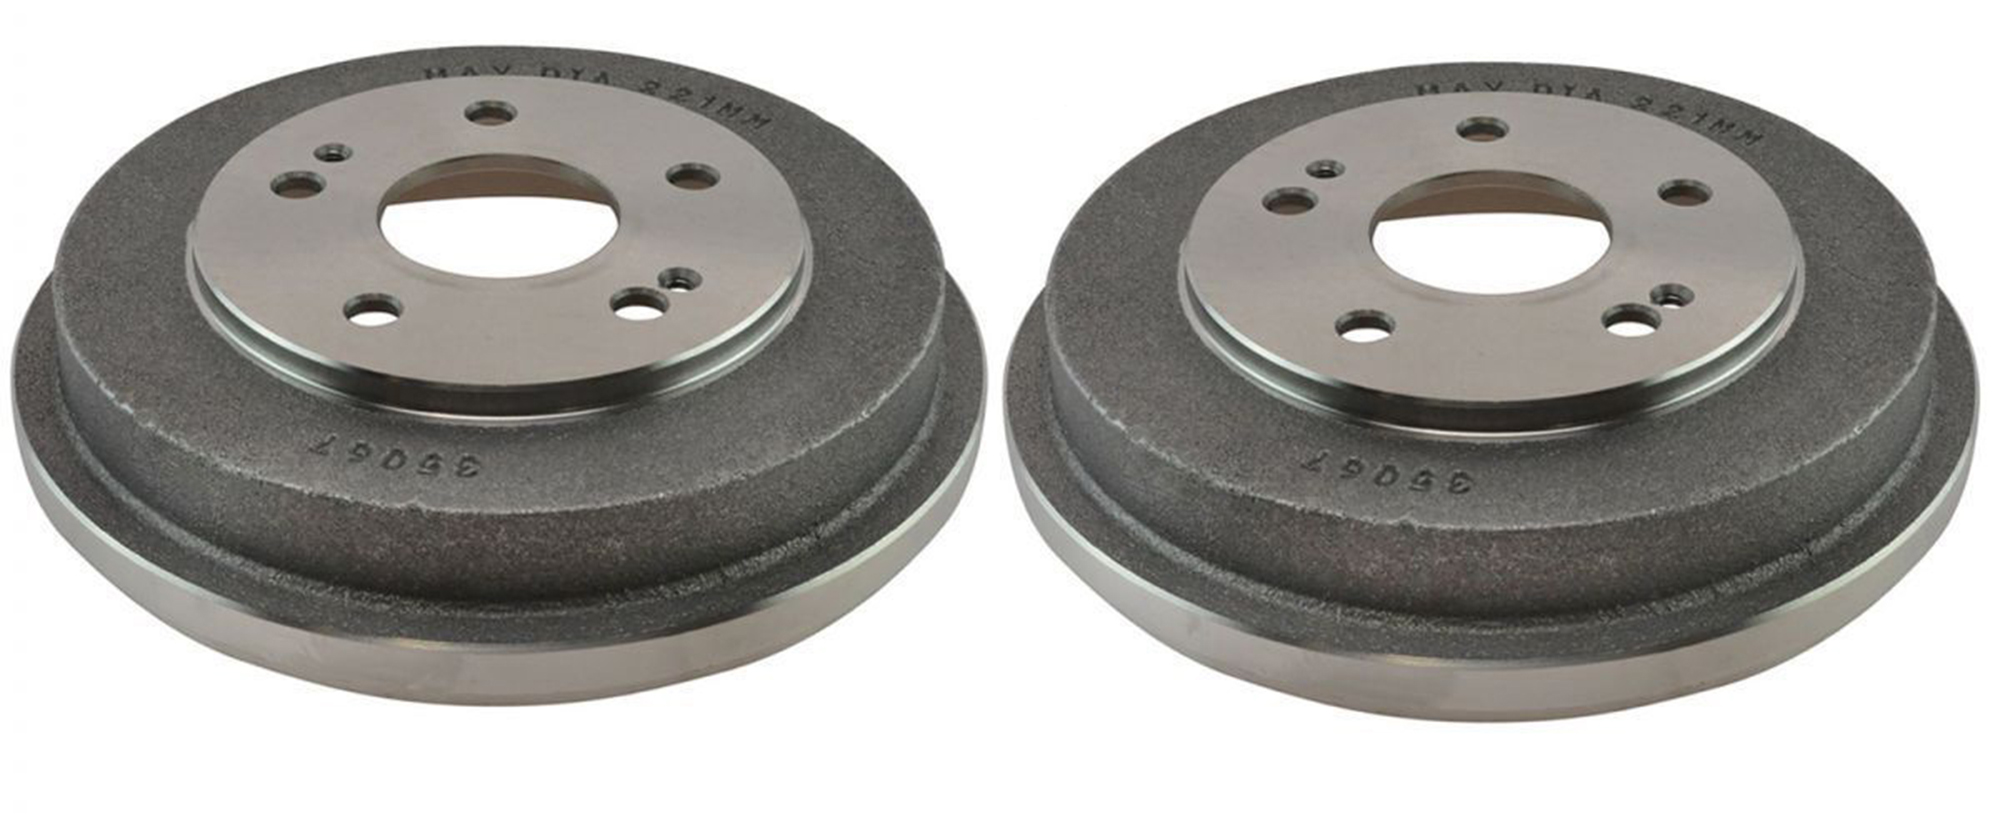 Pair (2) Premium REAR Brake Drums - Check Fitment Chart